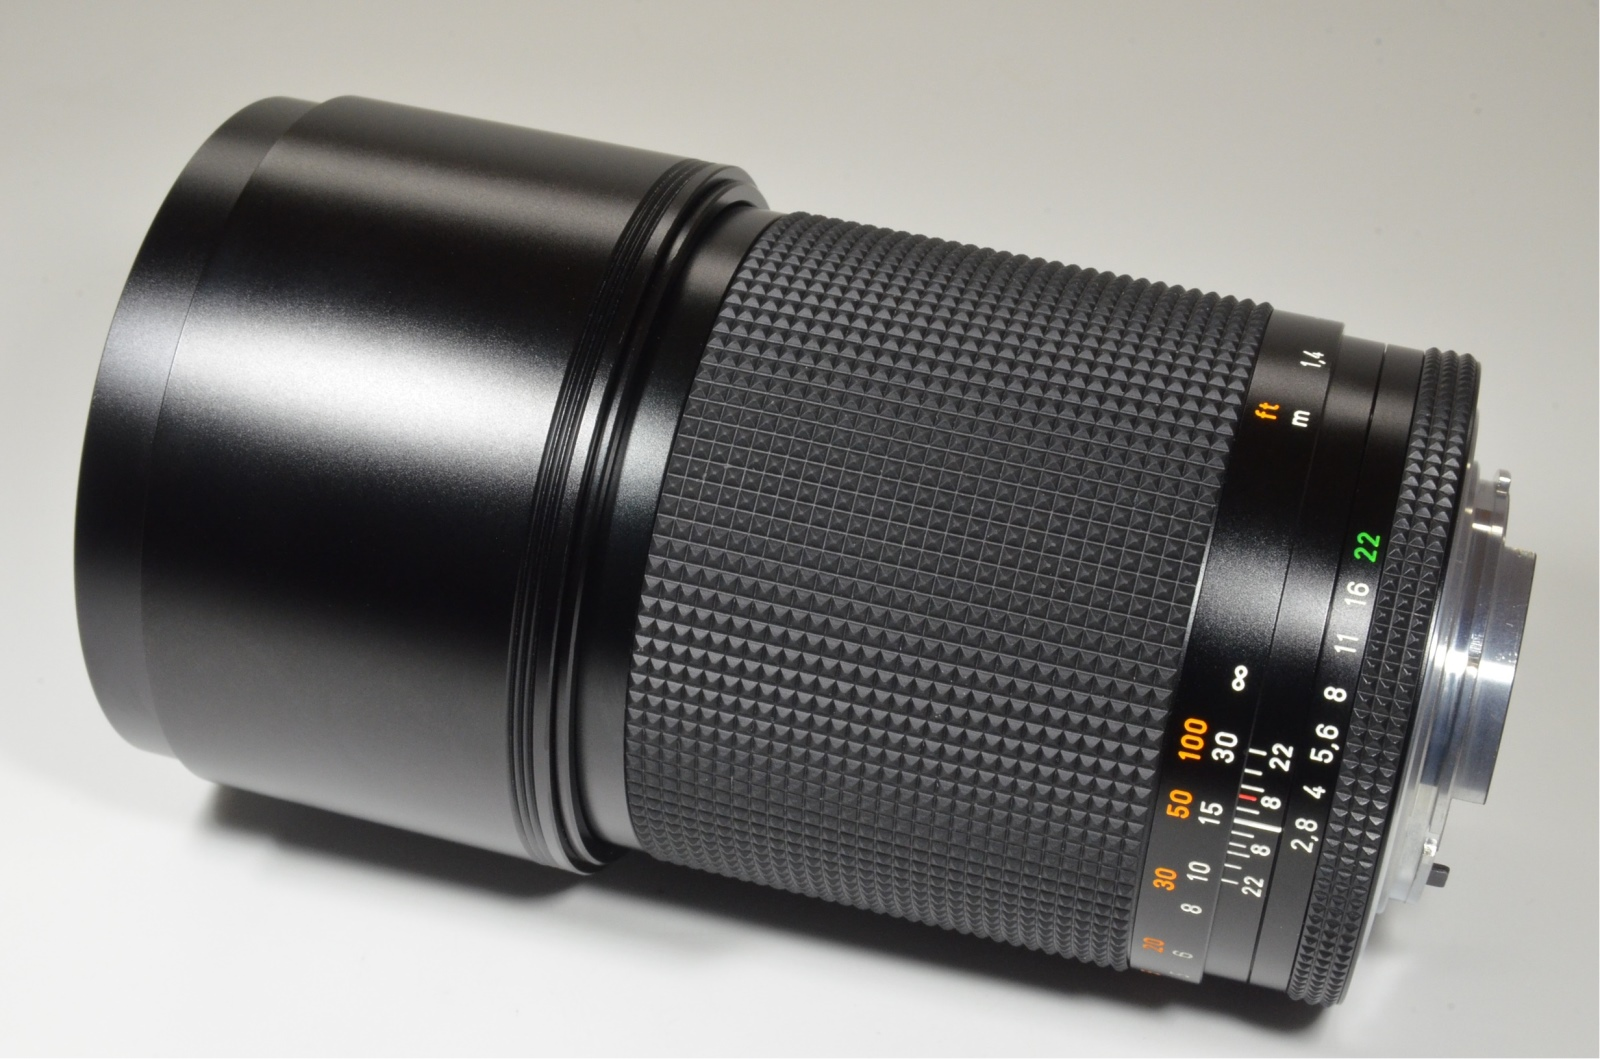 contax carl zeiss sonnar t* 180mm f2.8 mmj made in japan